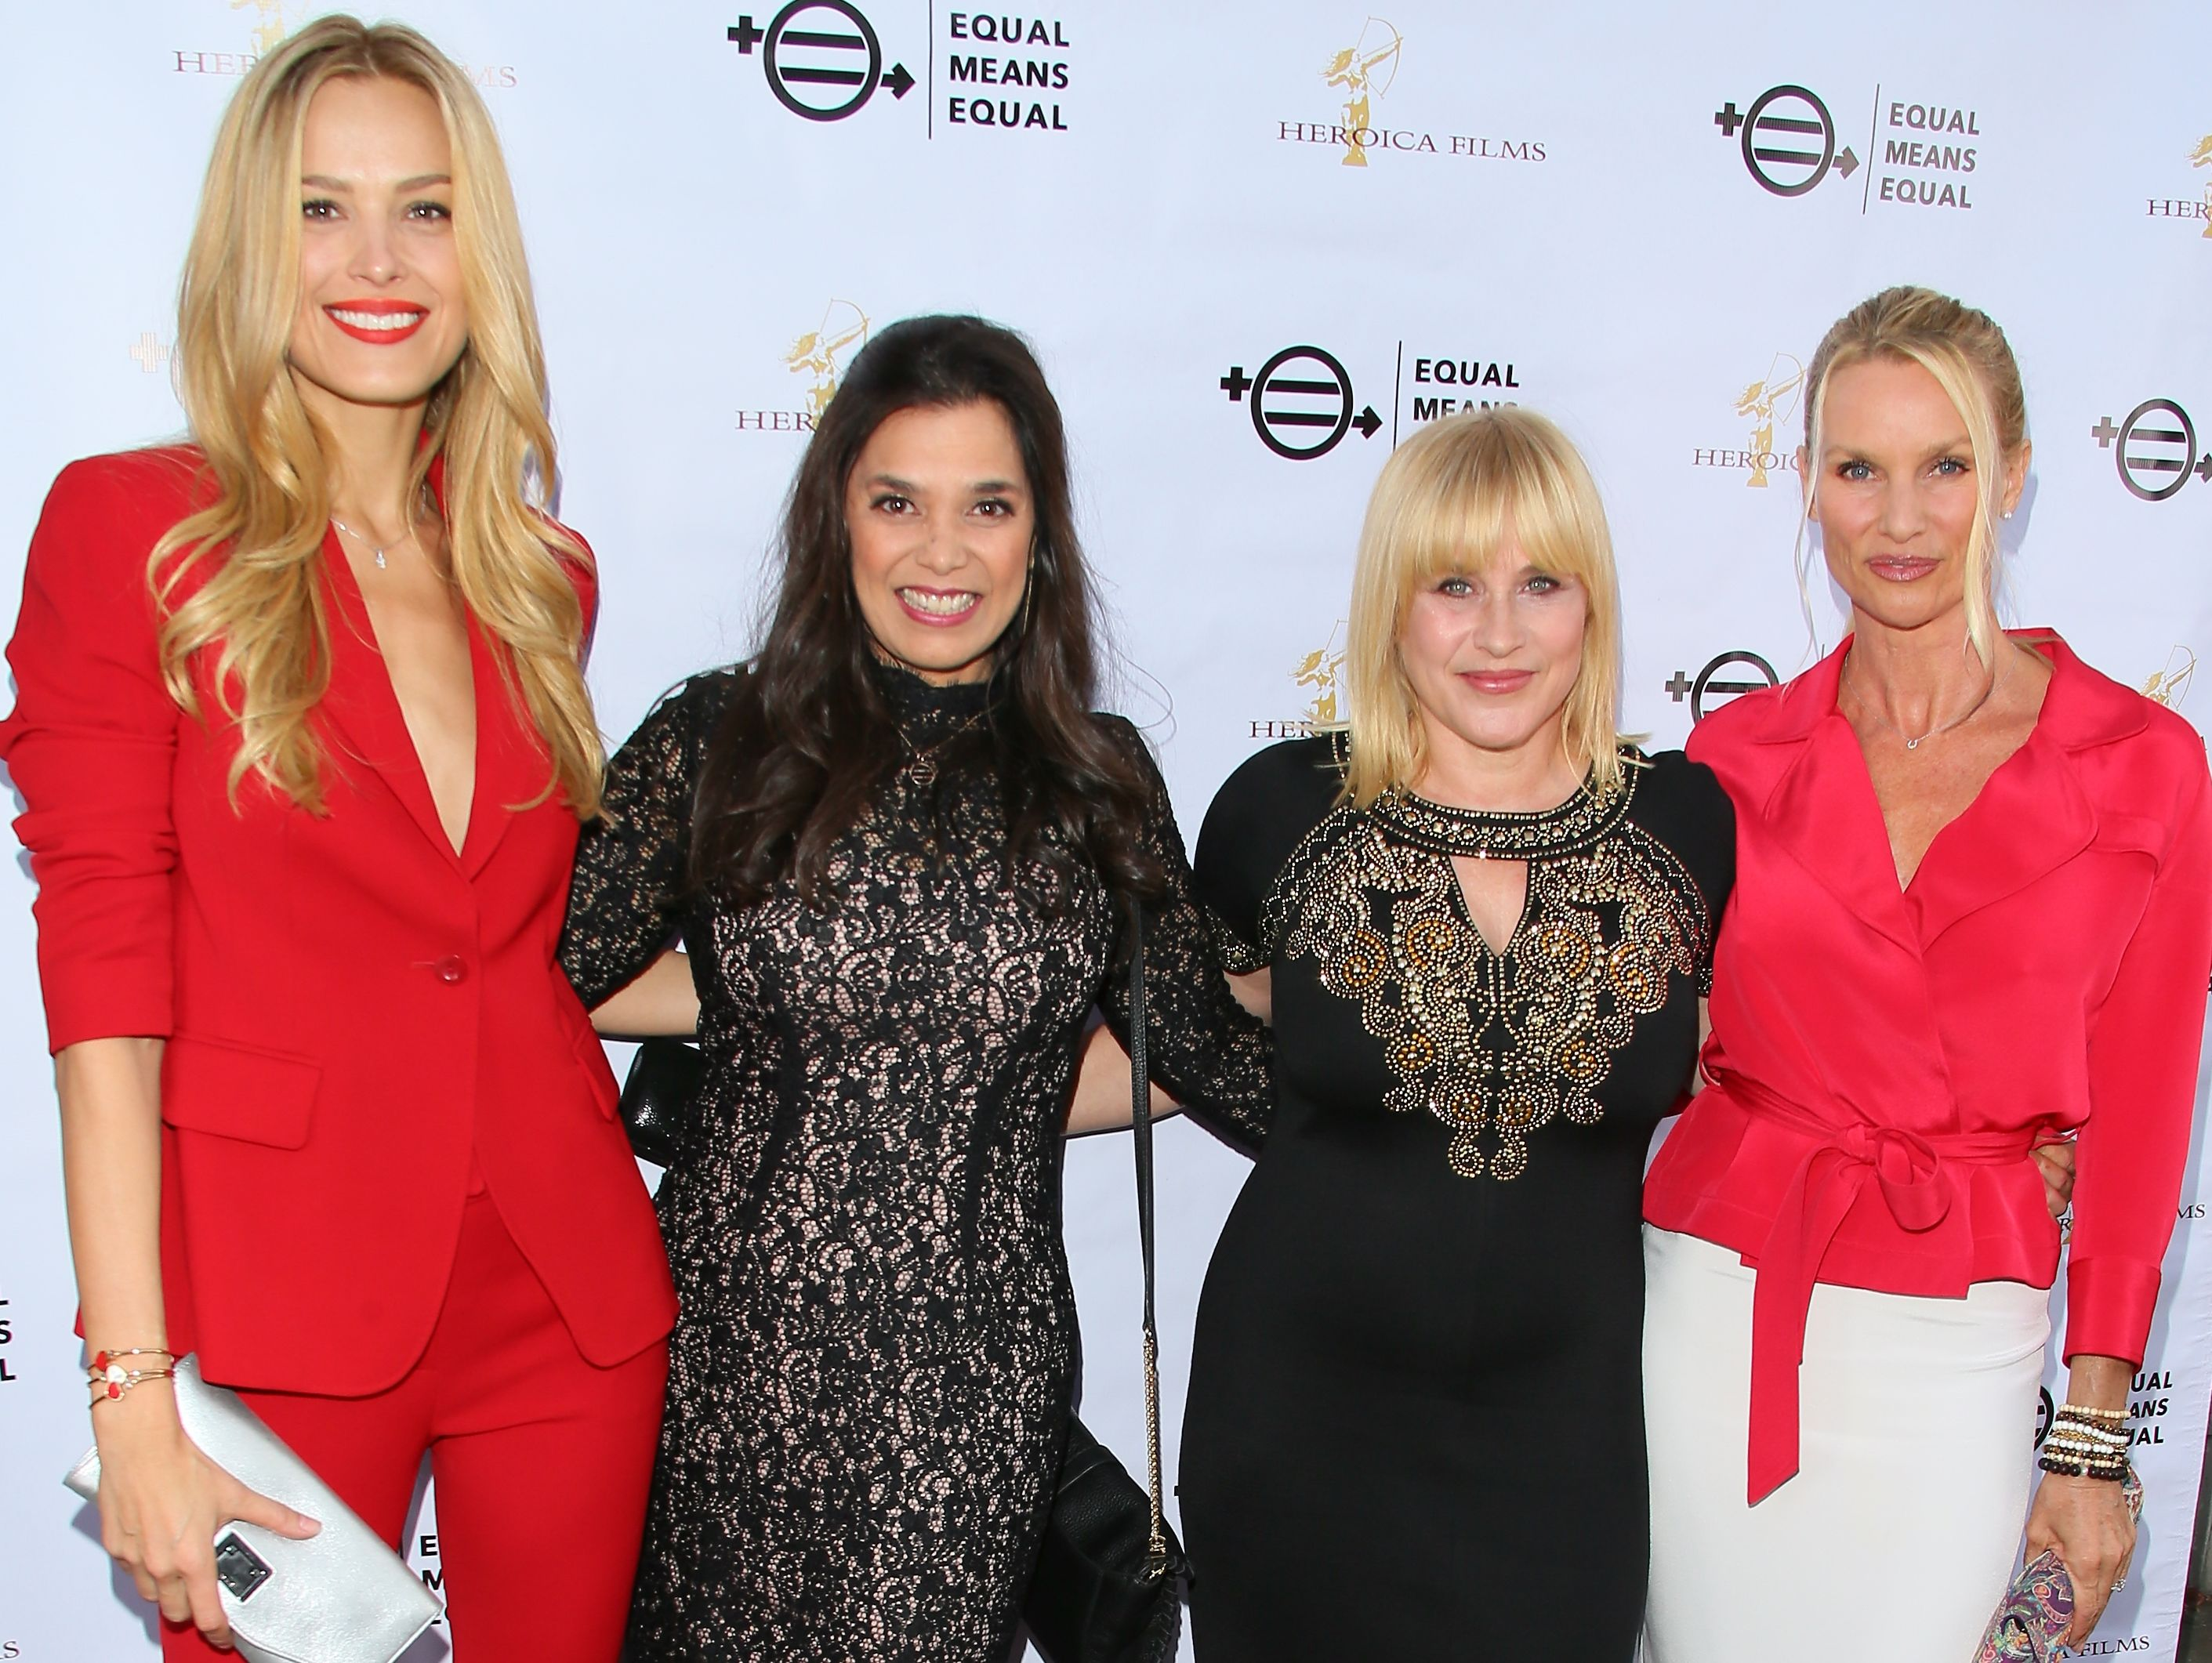 Petra Nemcova, left, filmmaker Kamala Lopez, Patricia Arquette and Nicollette Sheridan attend an 'Equal Means Equal' screening in Beverly Hills.